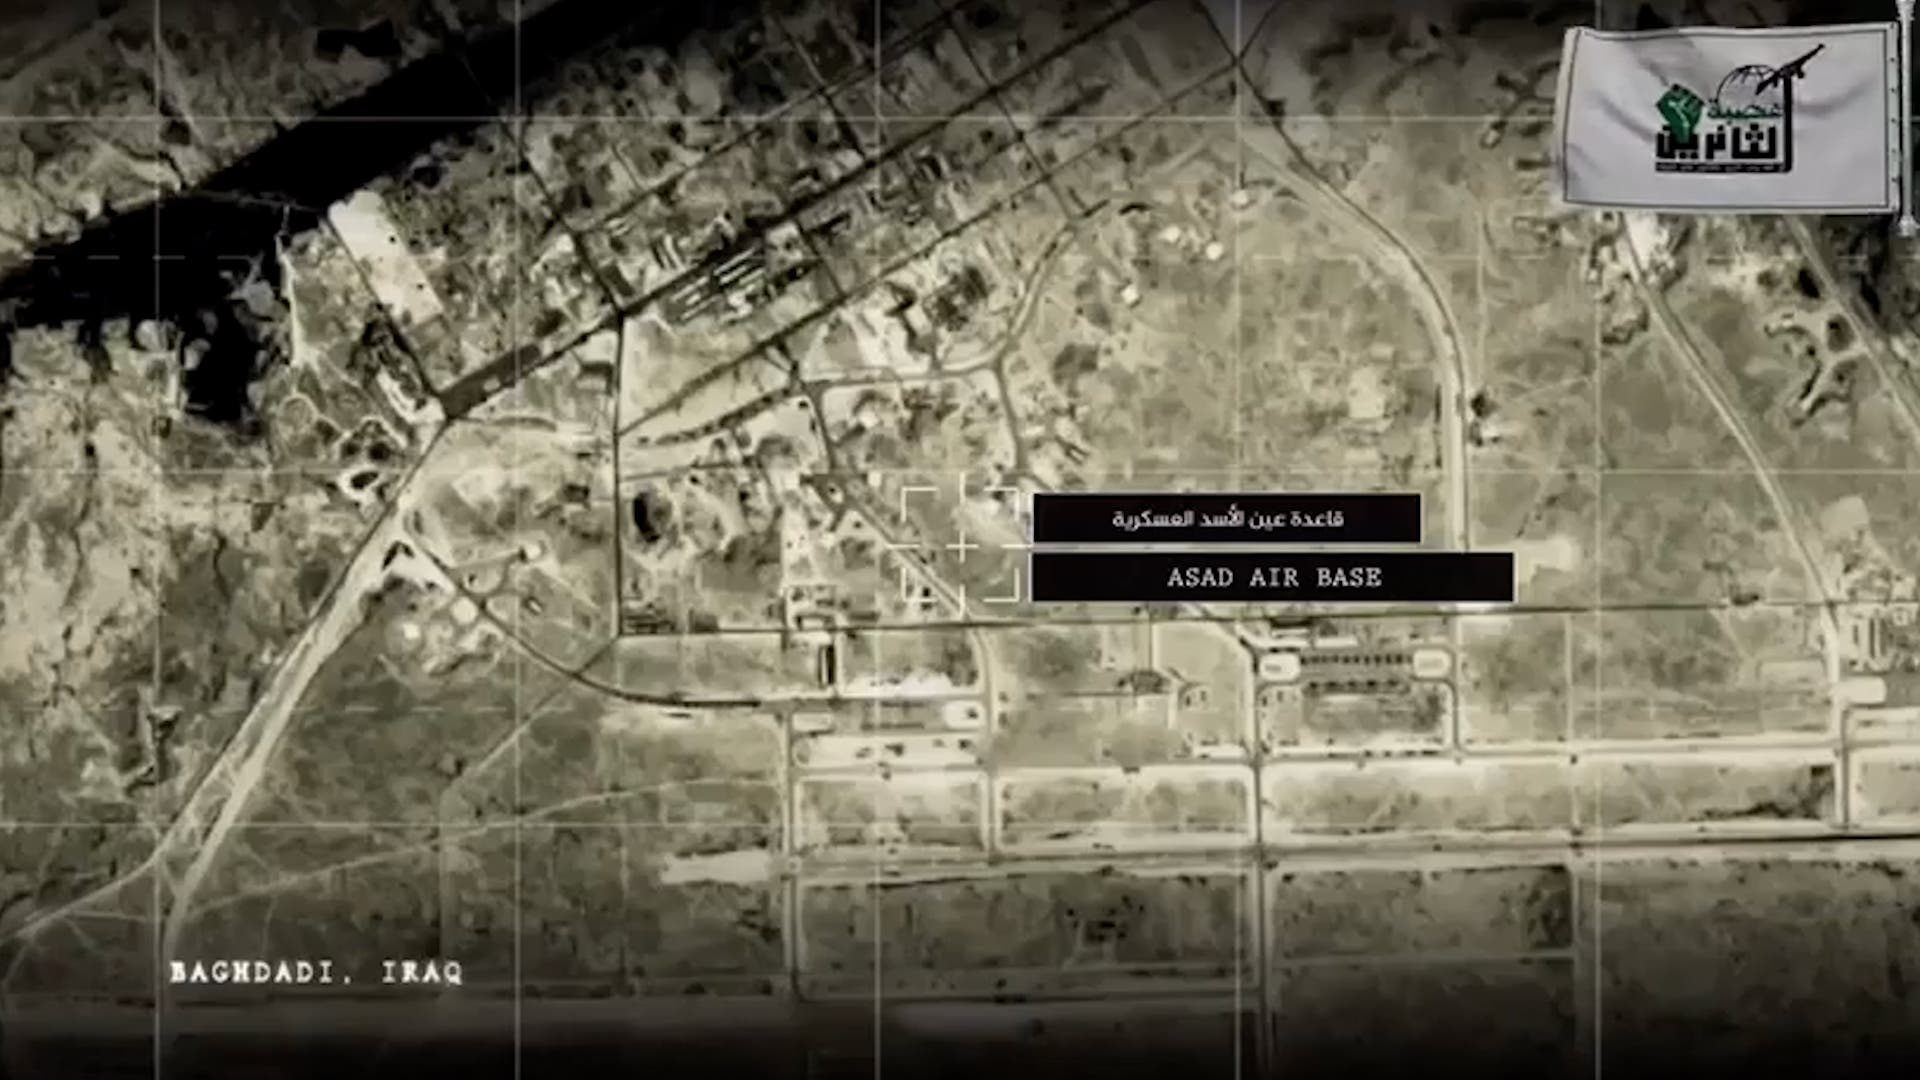 Screengrab from a video published by Usbat al-Thaereen, one of a handful of new front groups and militias that have emerged in Iraq that are backed by Iran. (Video courtesy of Phillip Smyth).